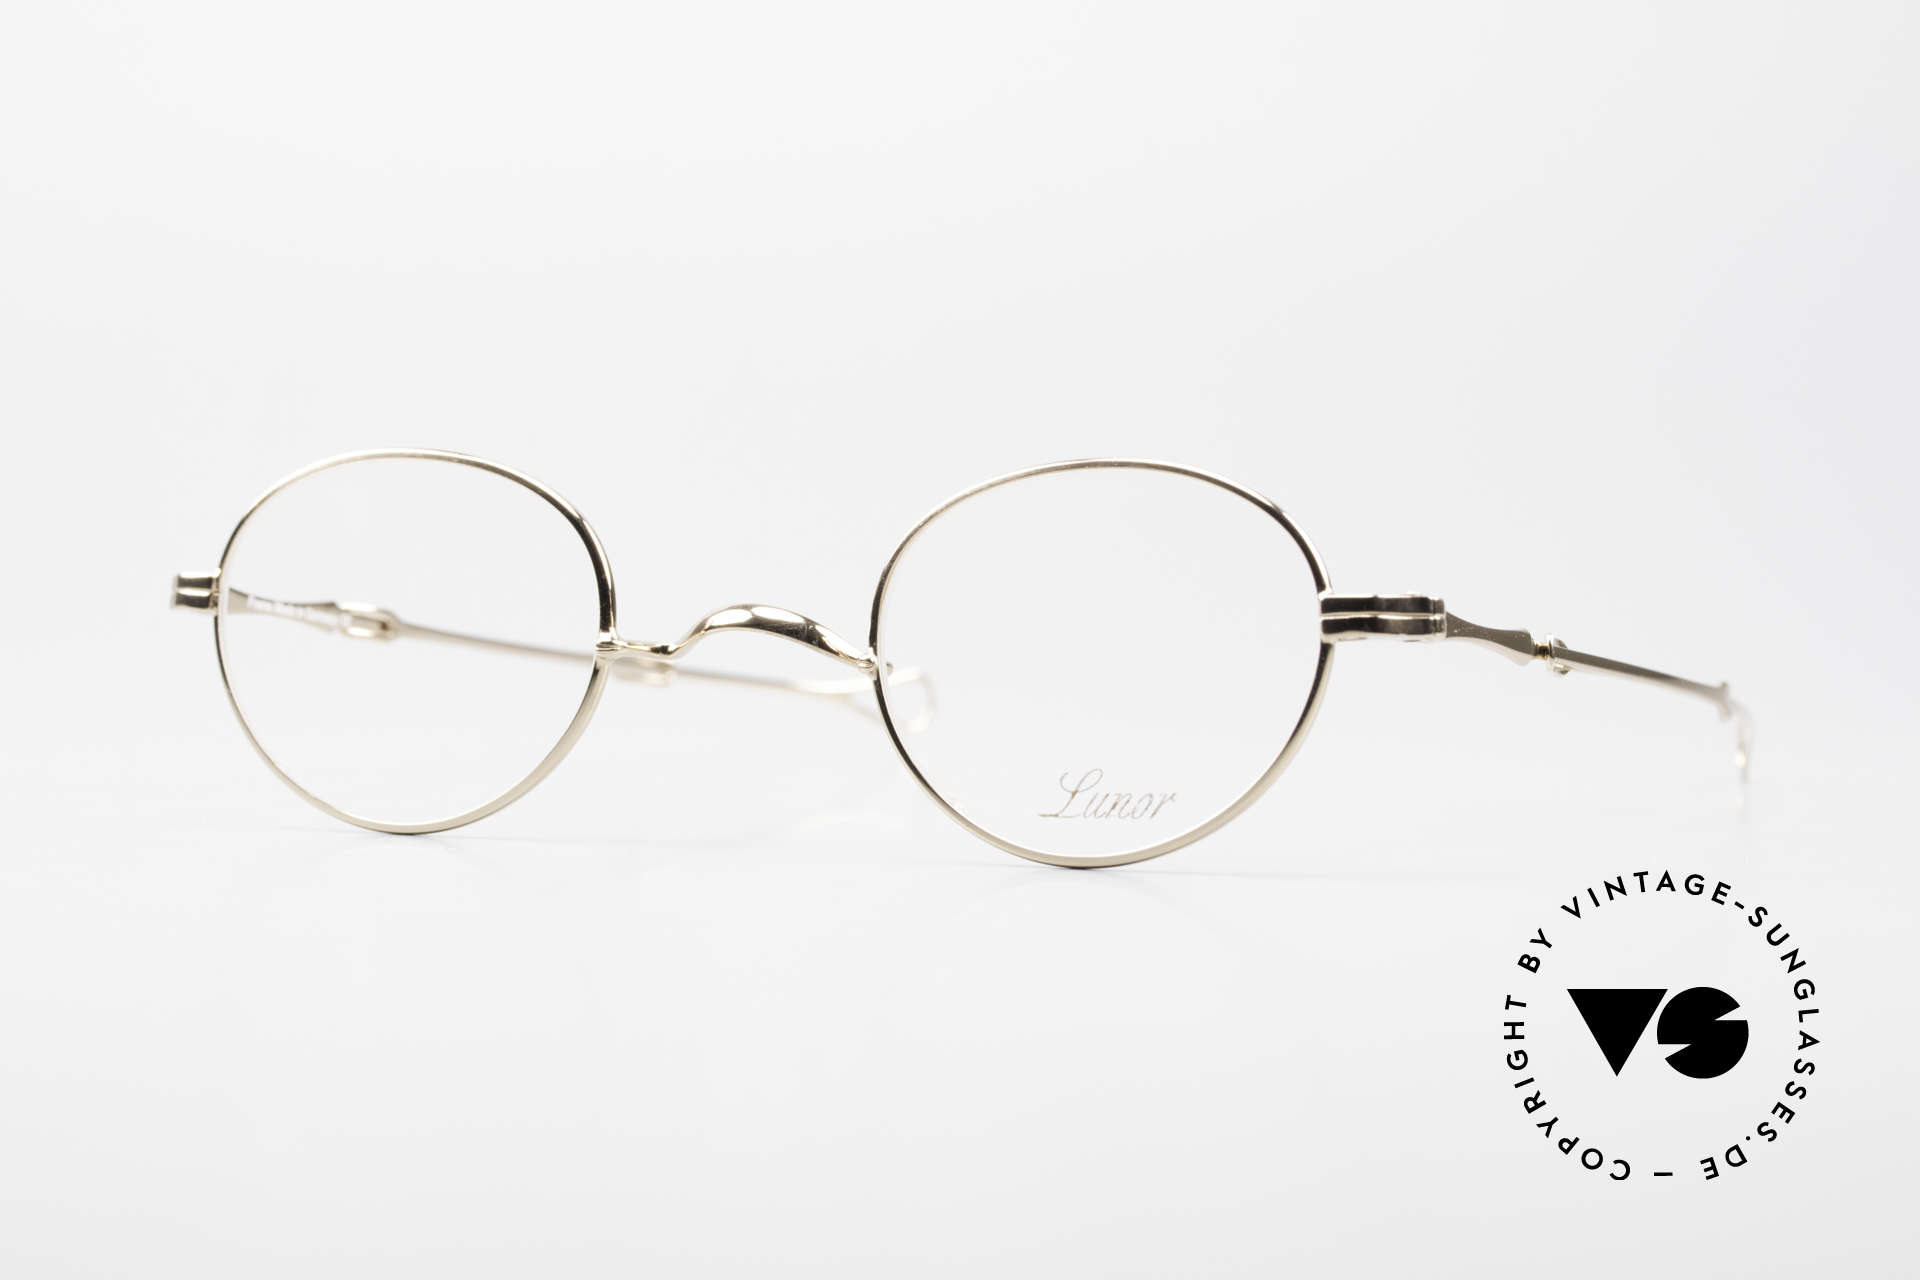 """Lunor I 20 Telescopic Sliding Temples Gold Plated, old LUNOR telescopic eyeglasses or """"sliding glasses', Made for Men and Women"""